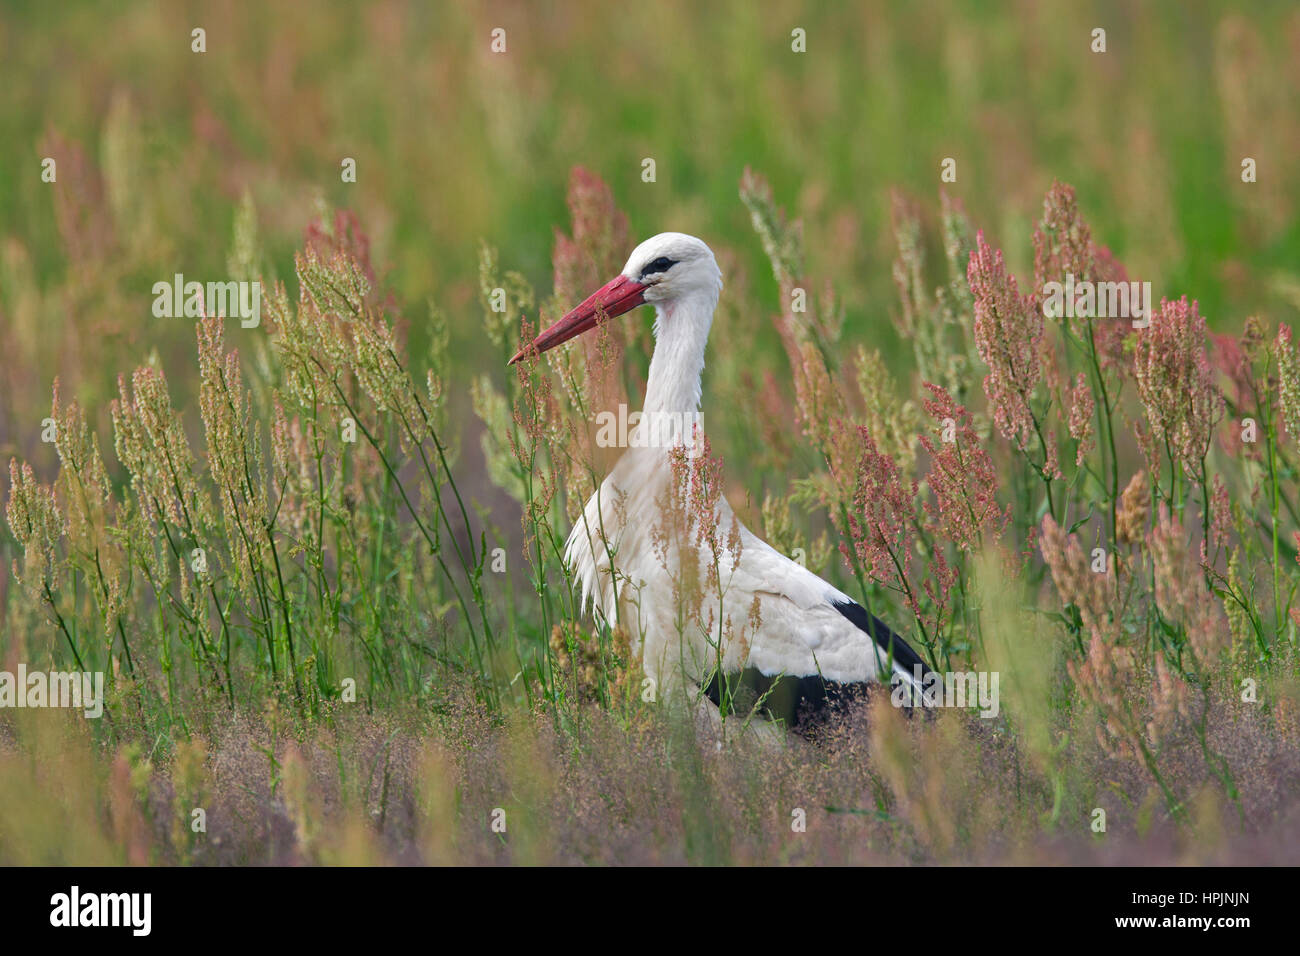 White stork (Ciconia ciconia) foraging in grassland in summer - Stock Image